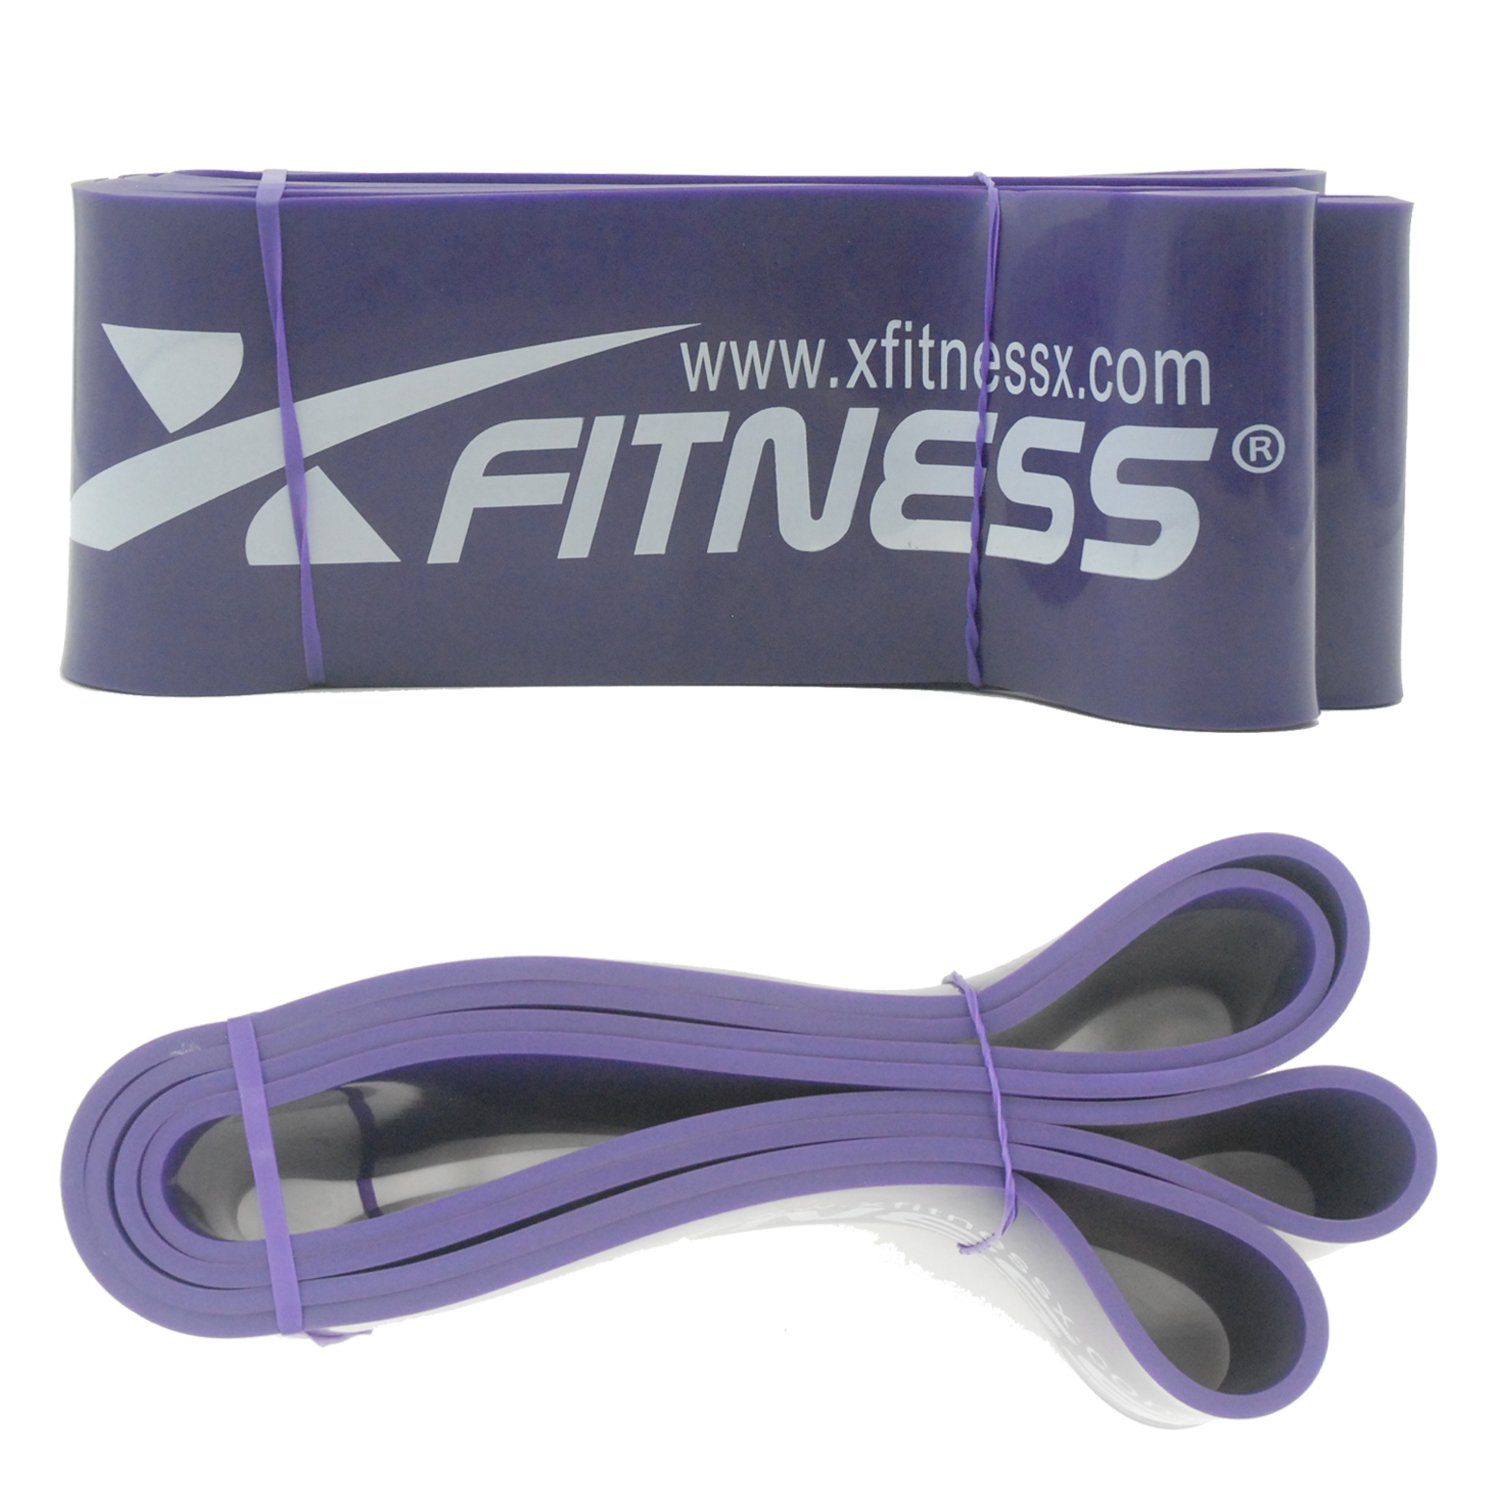 xFitness Pull Up Assist Resistance Stretch Band#4 Blue 40-80 lbs Resistance